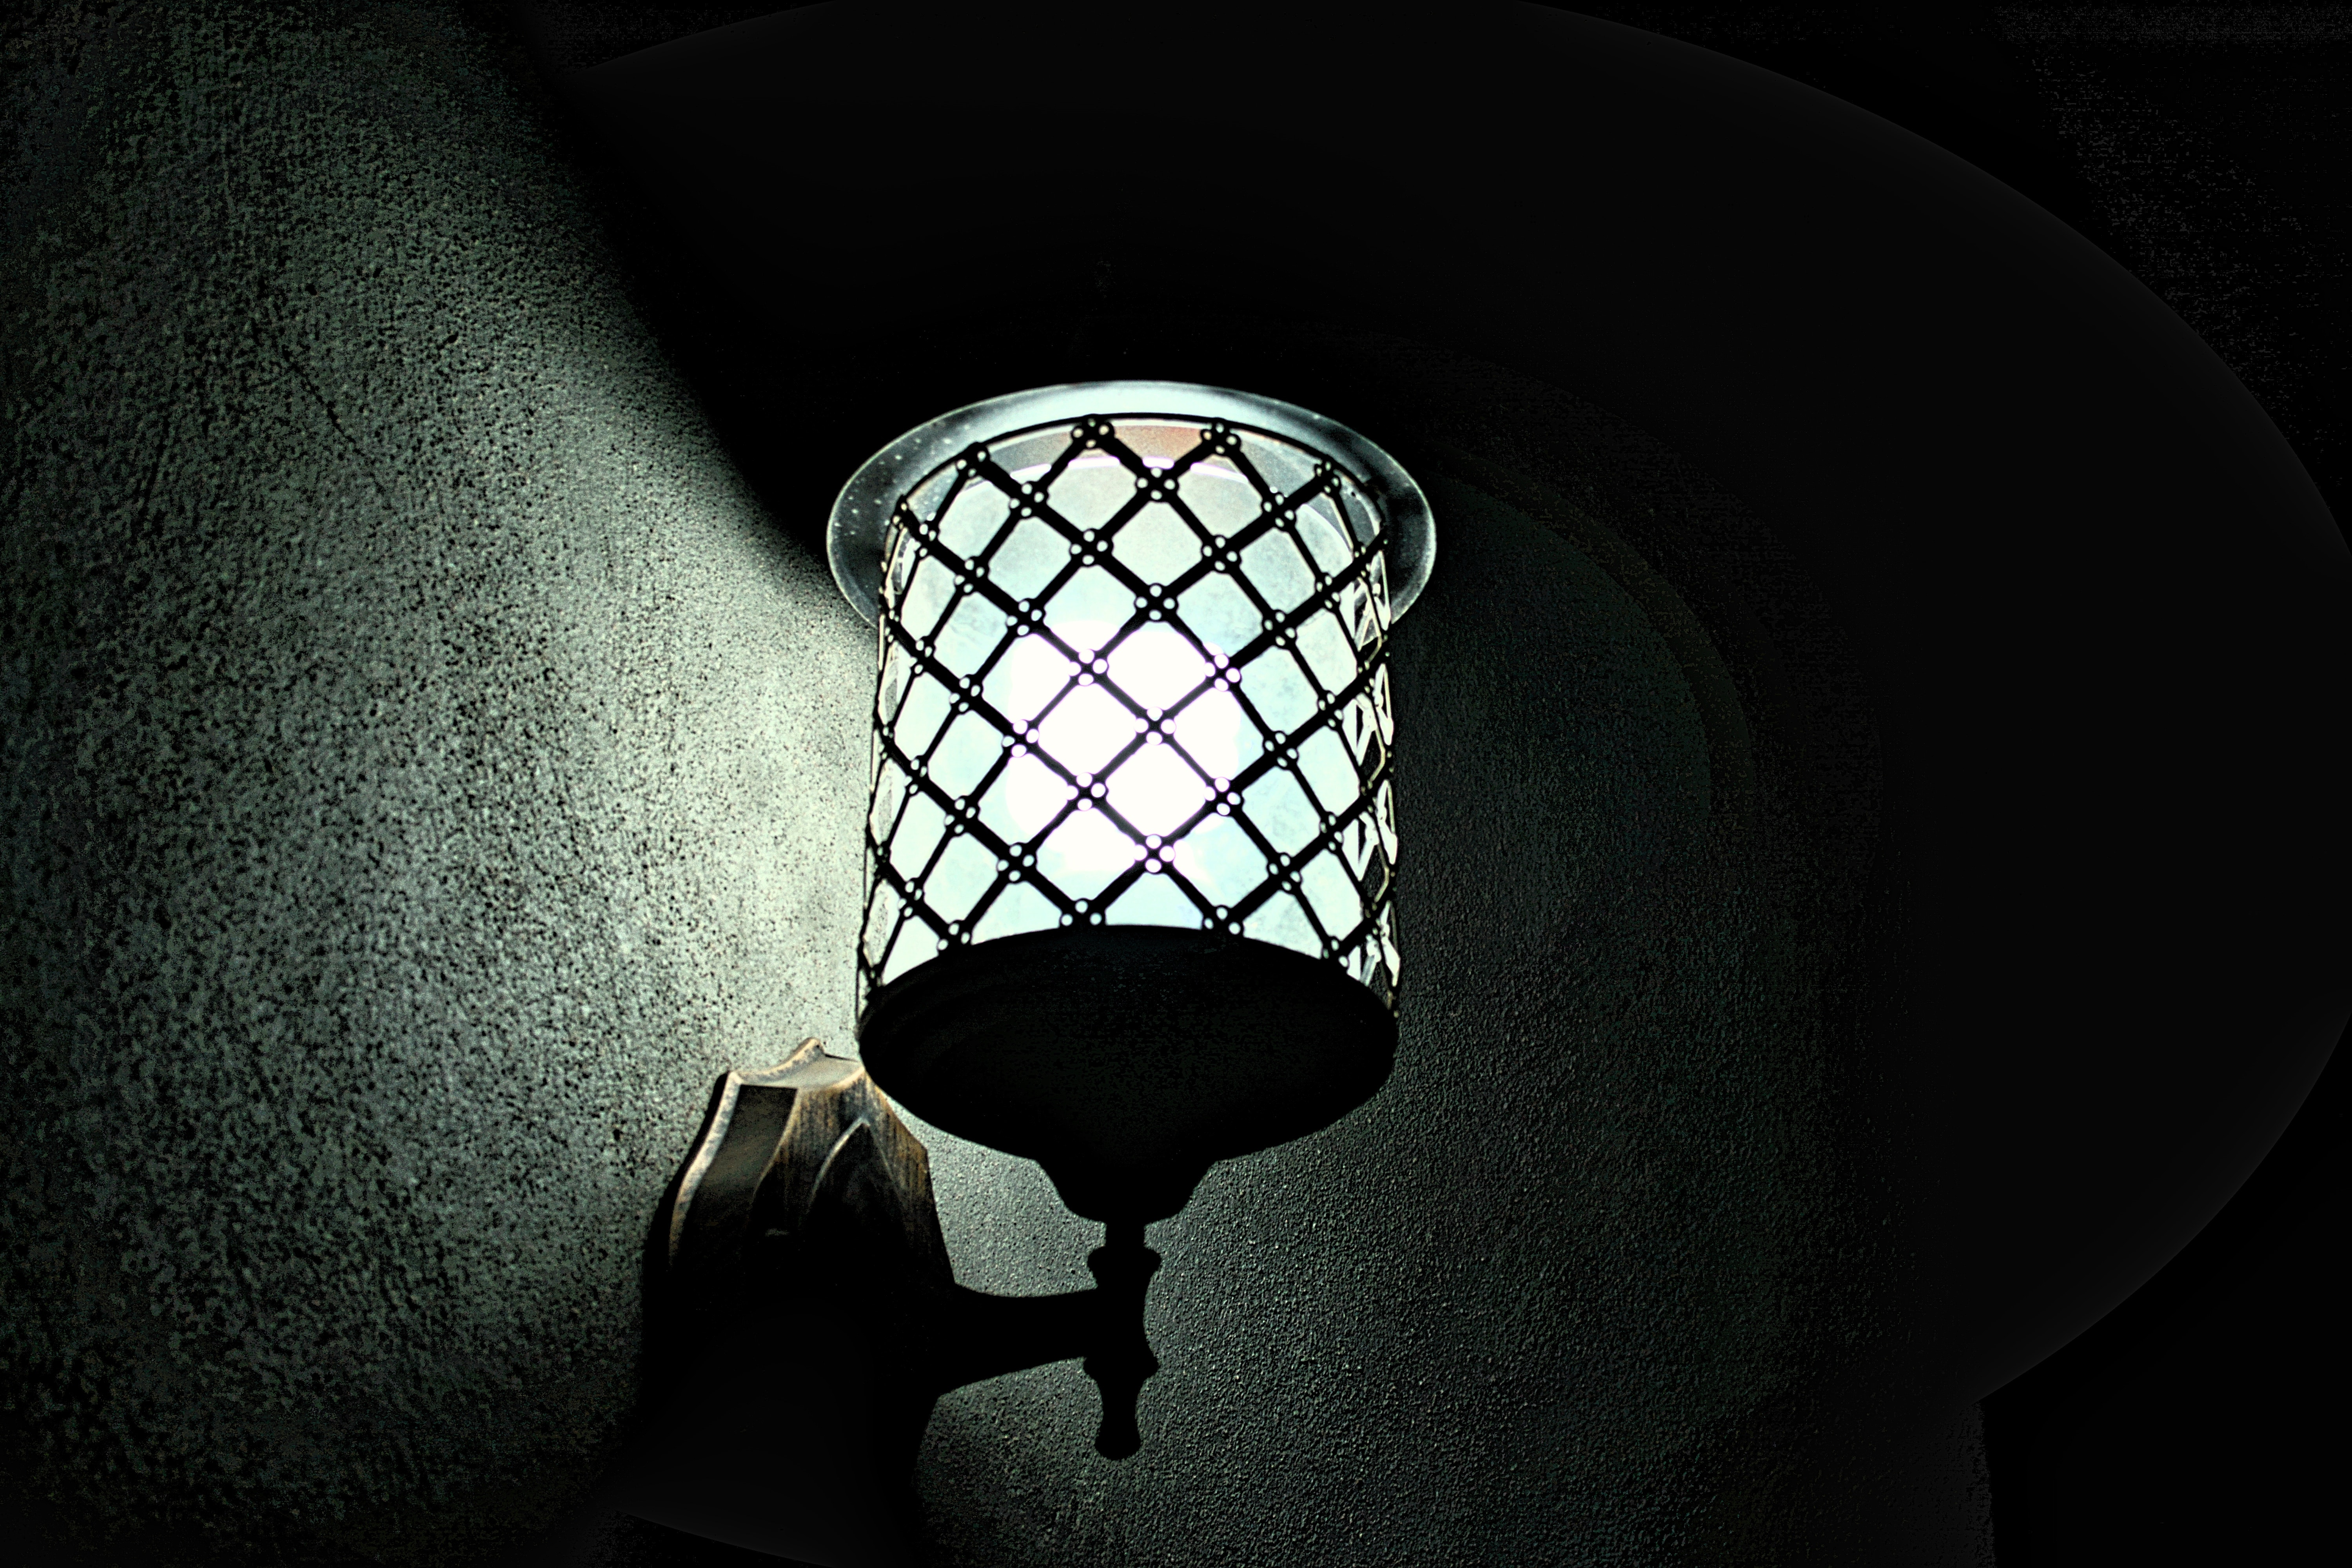 Metal sconce light switched on during night time photo